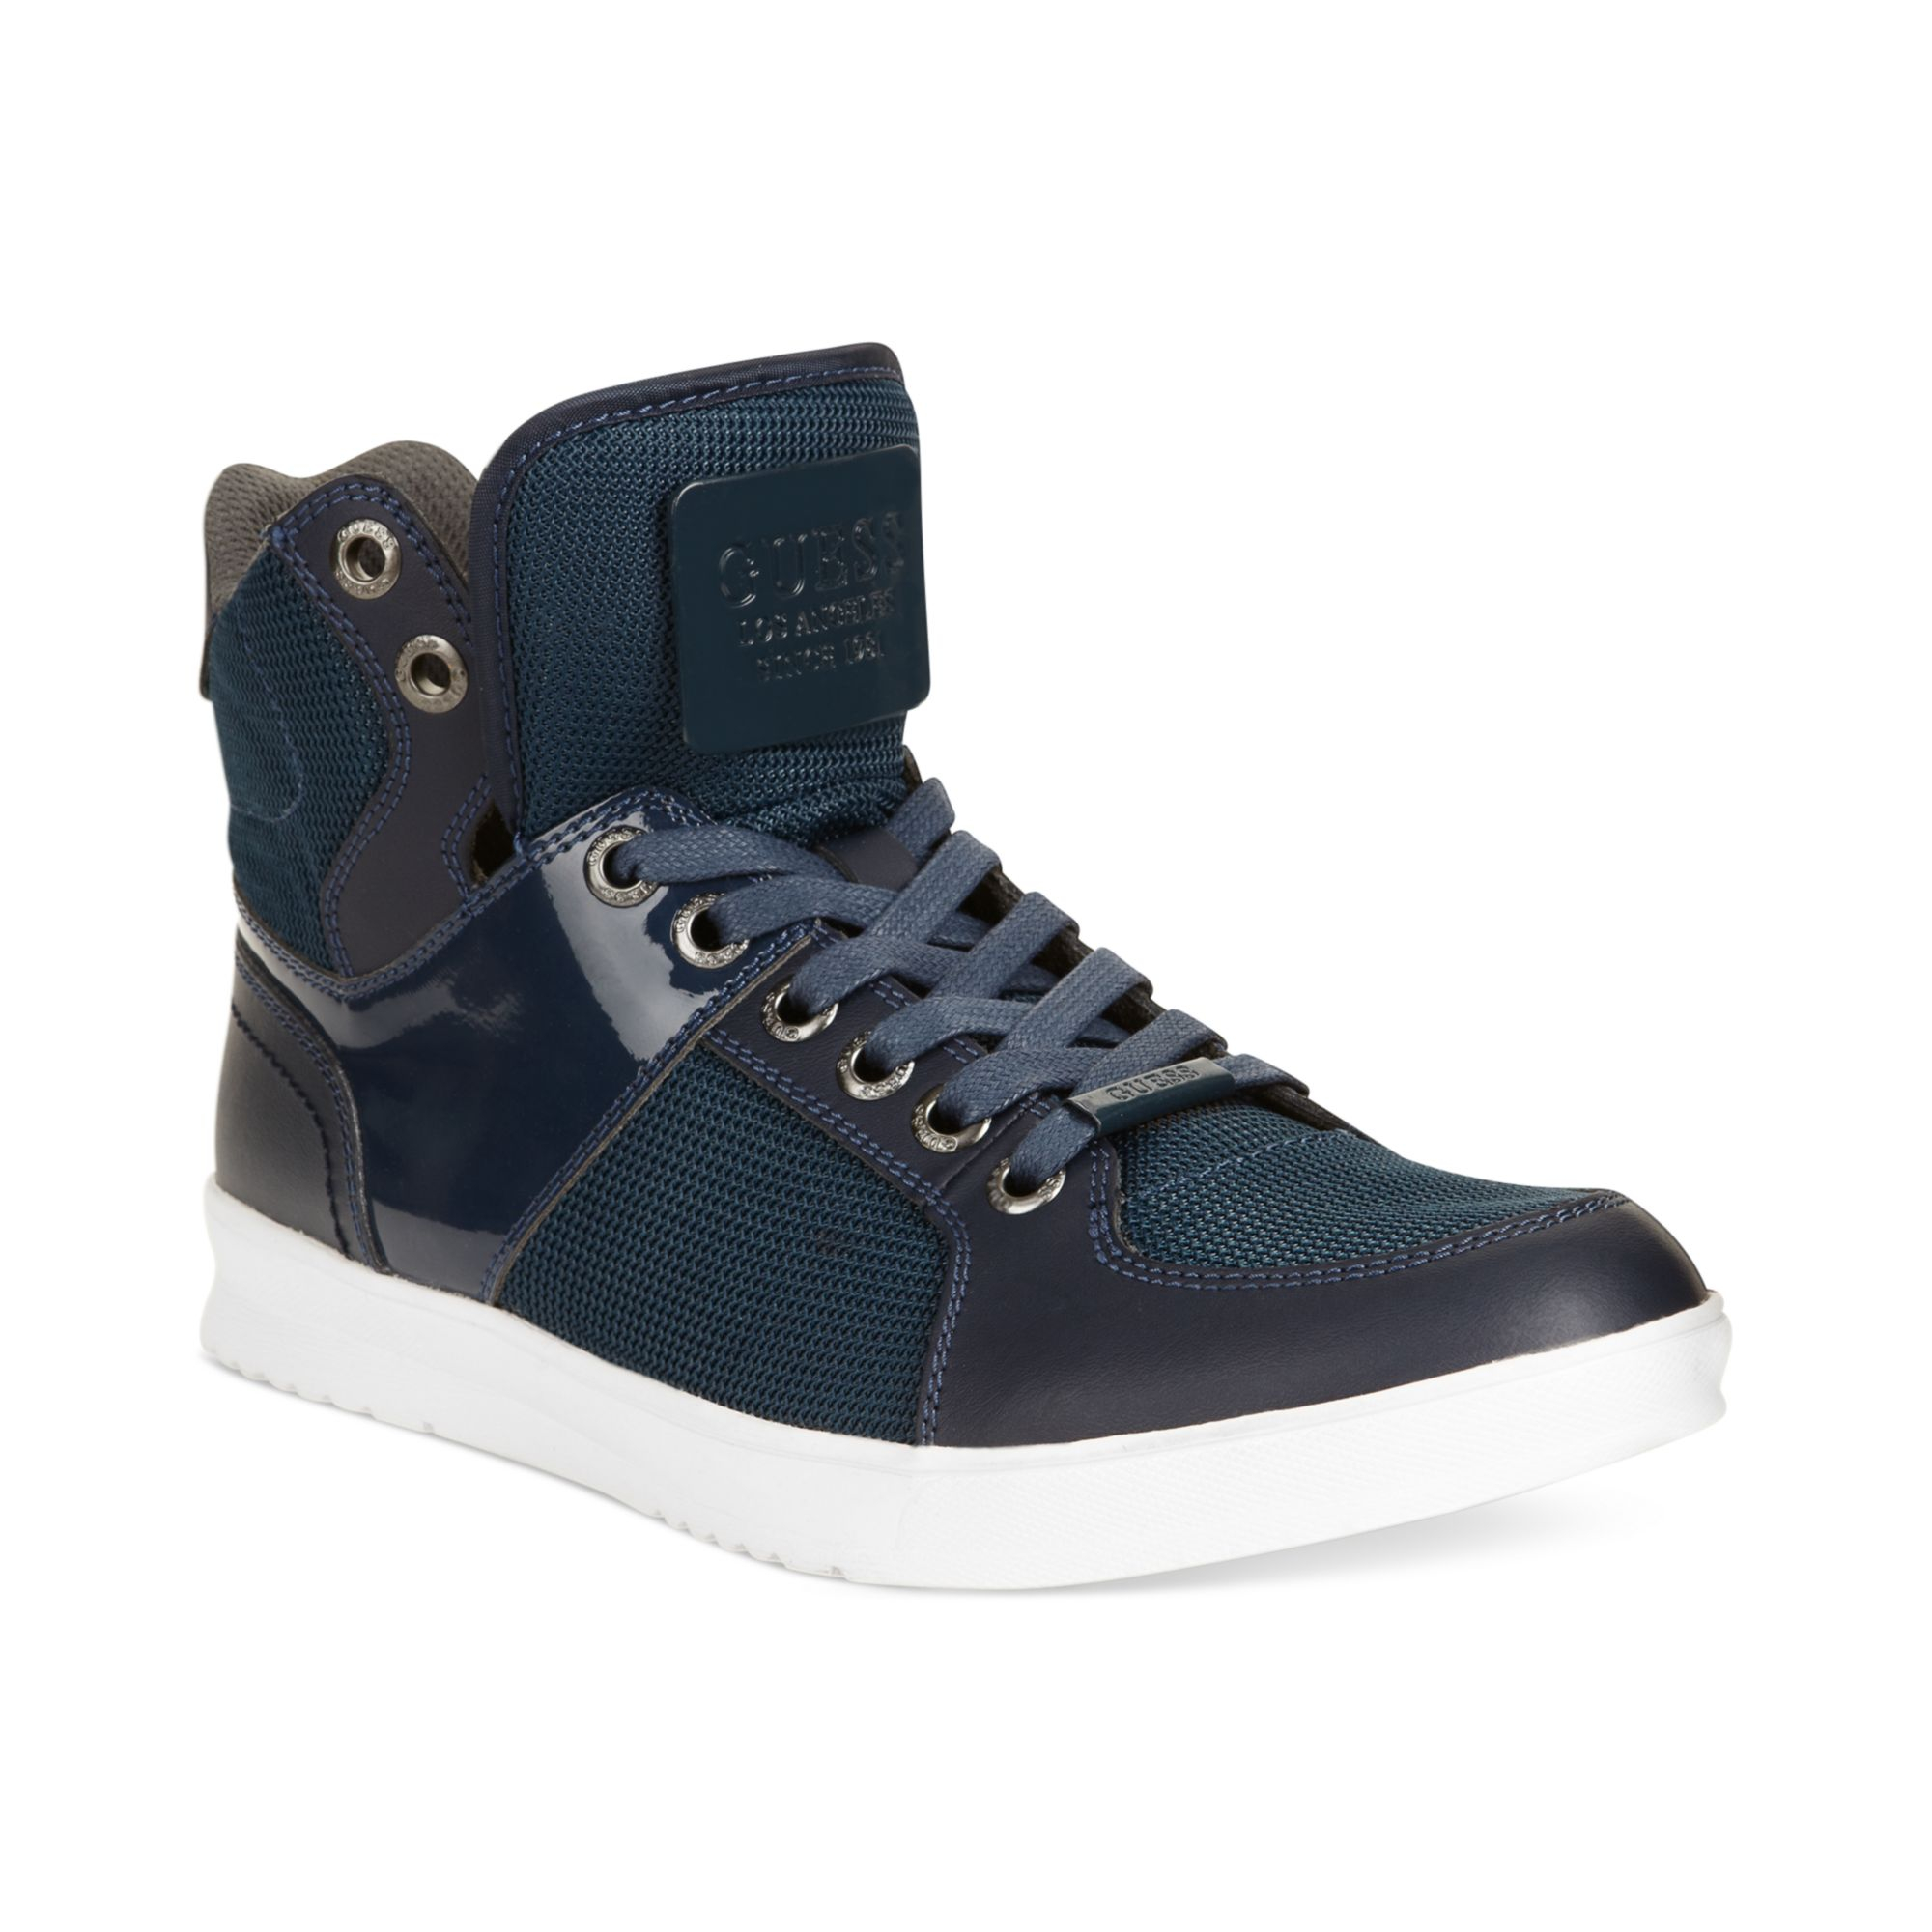 guess mens shoes trippy5 sneakers in blue for cobalt